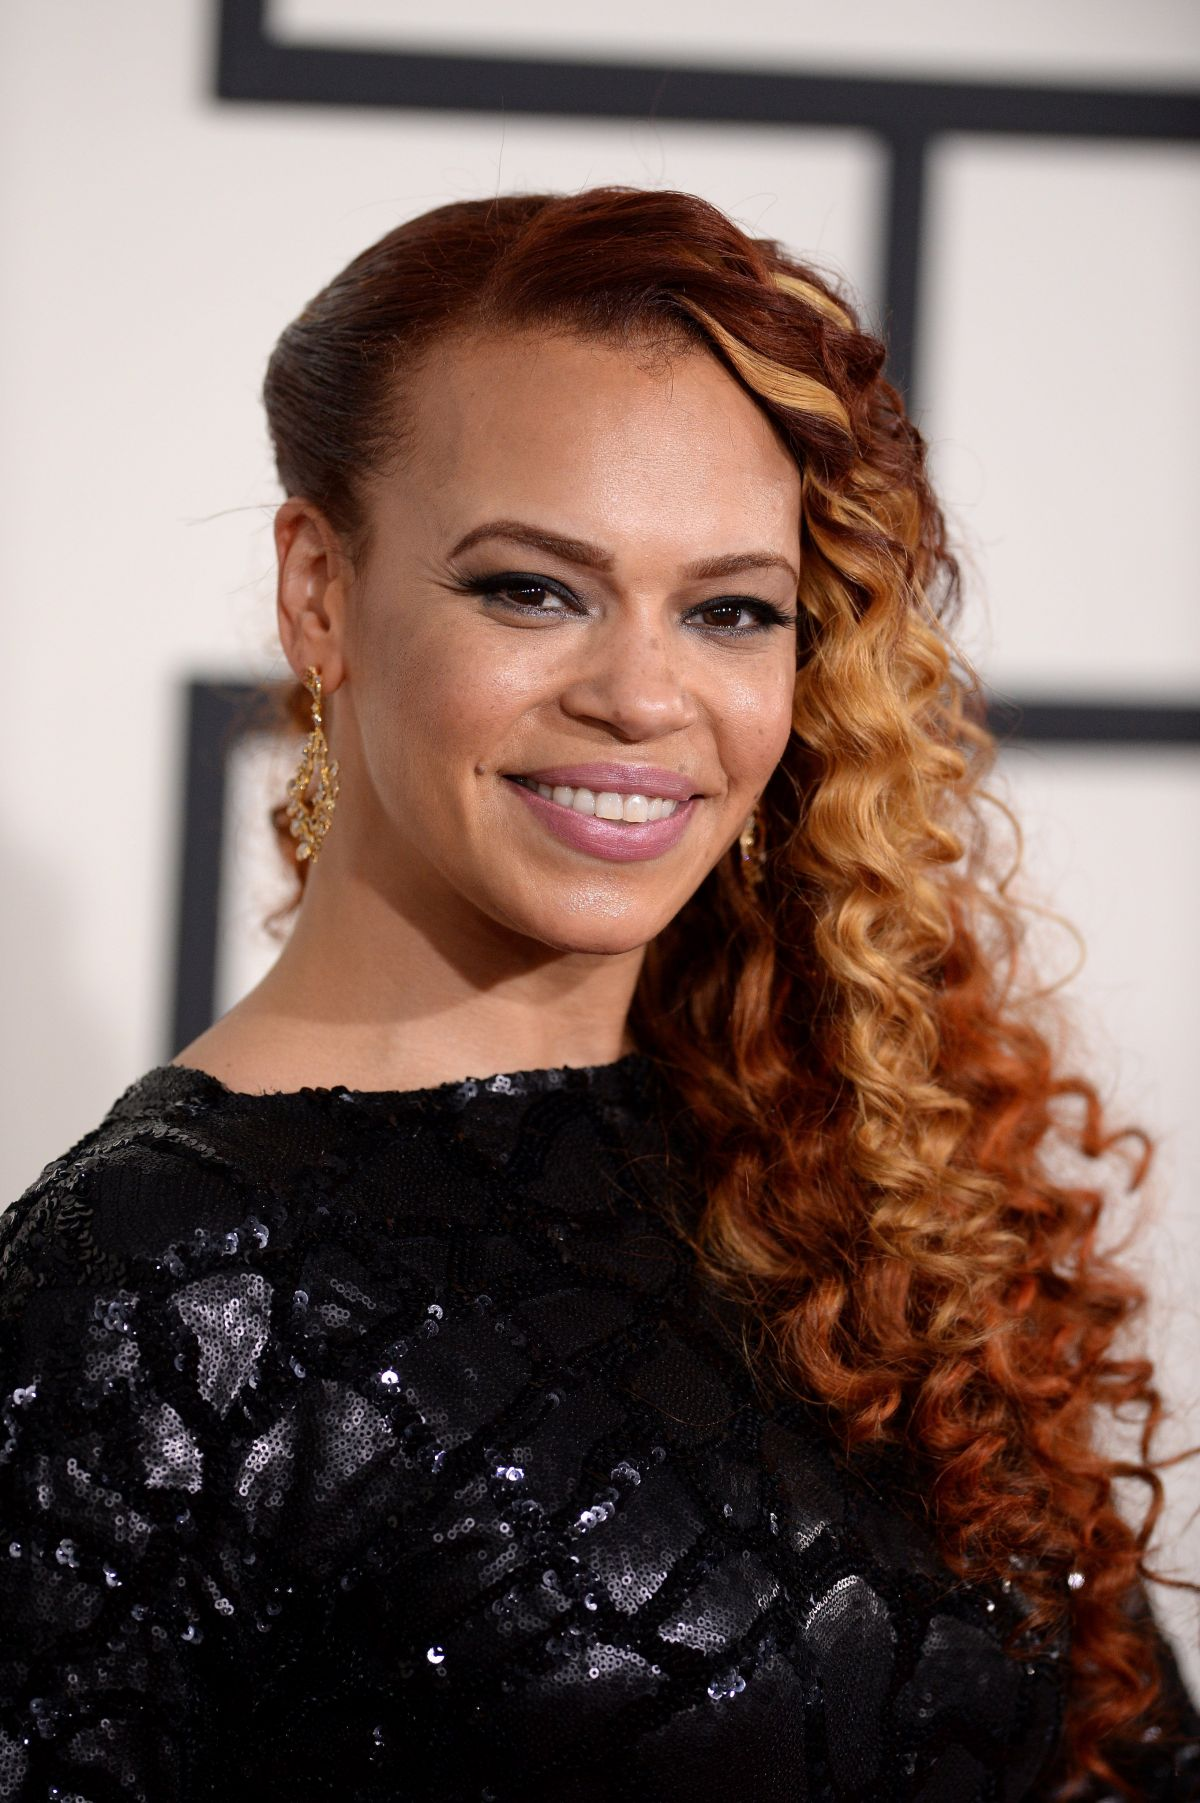 faith evans again